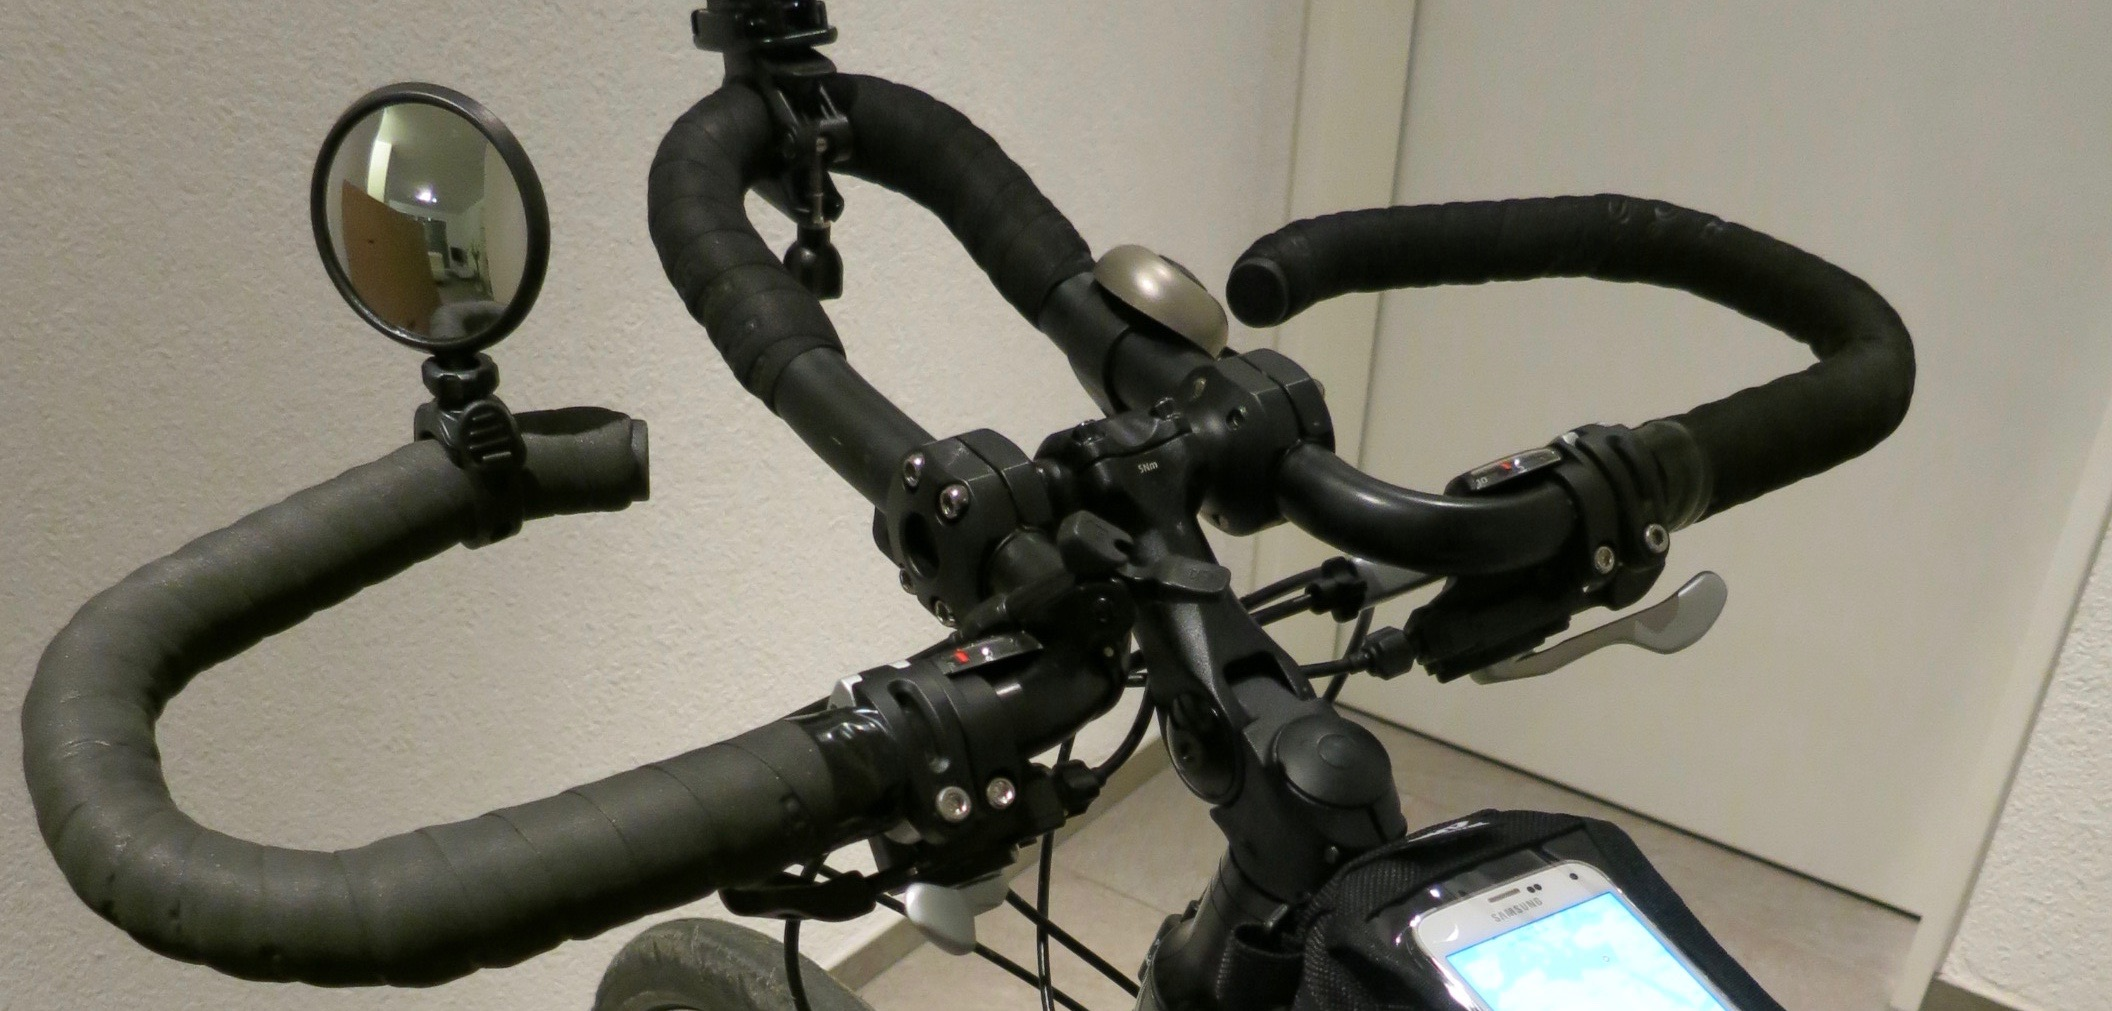 KOGA traveller handlebar (discontinued model)